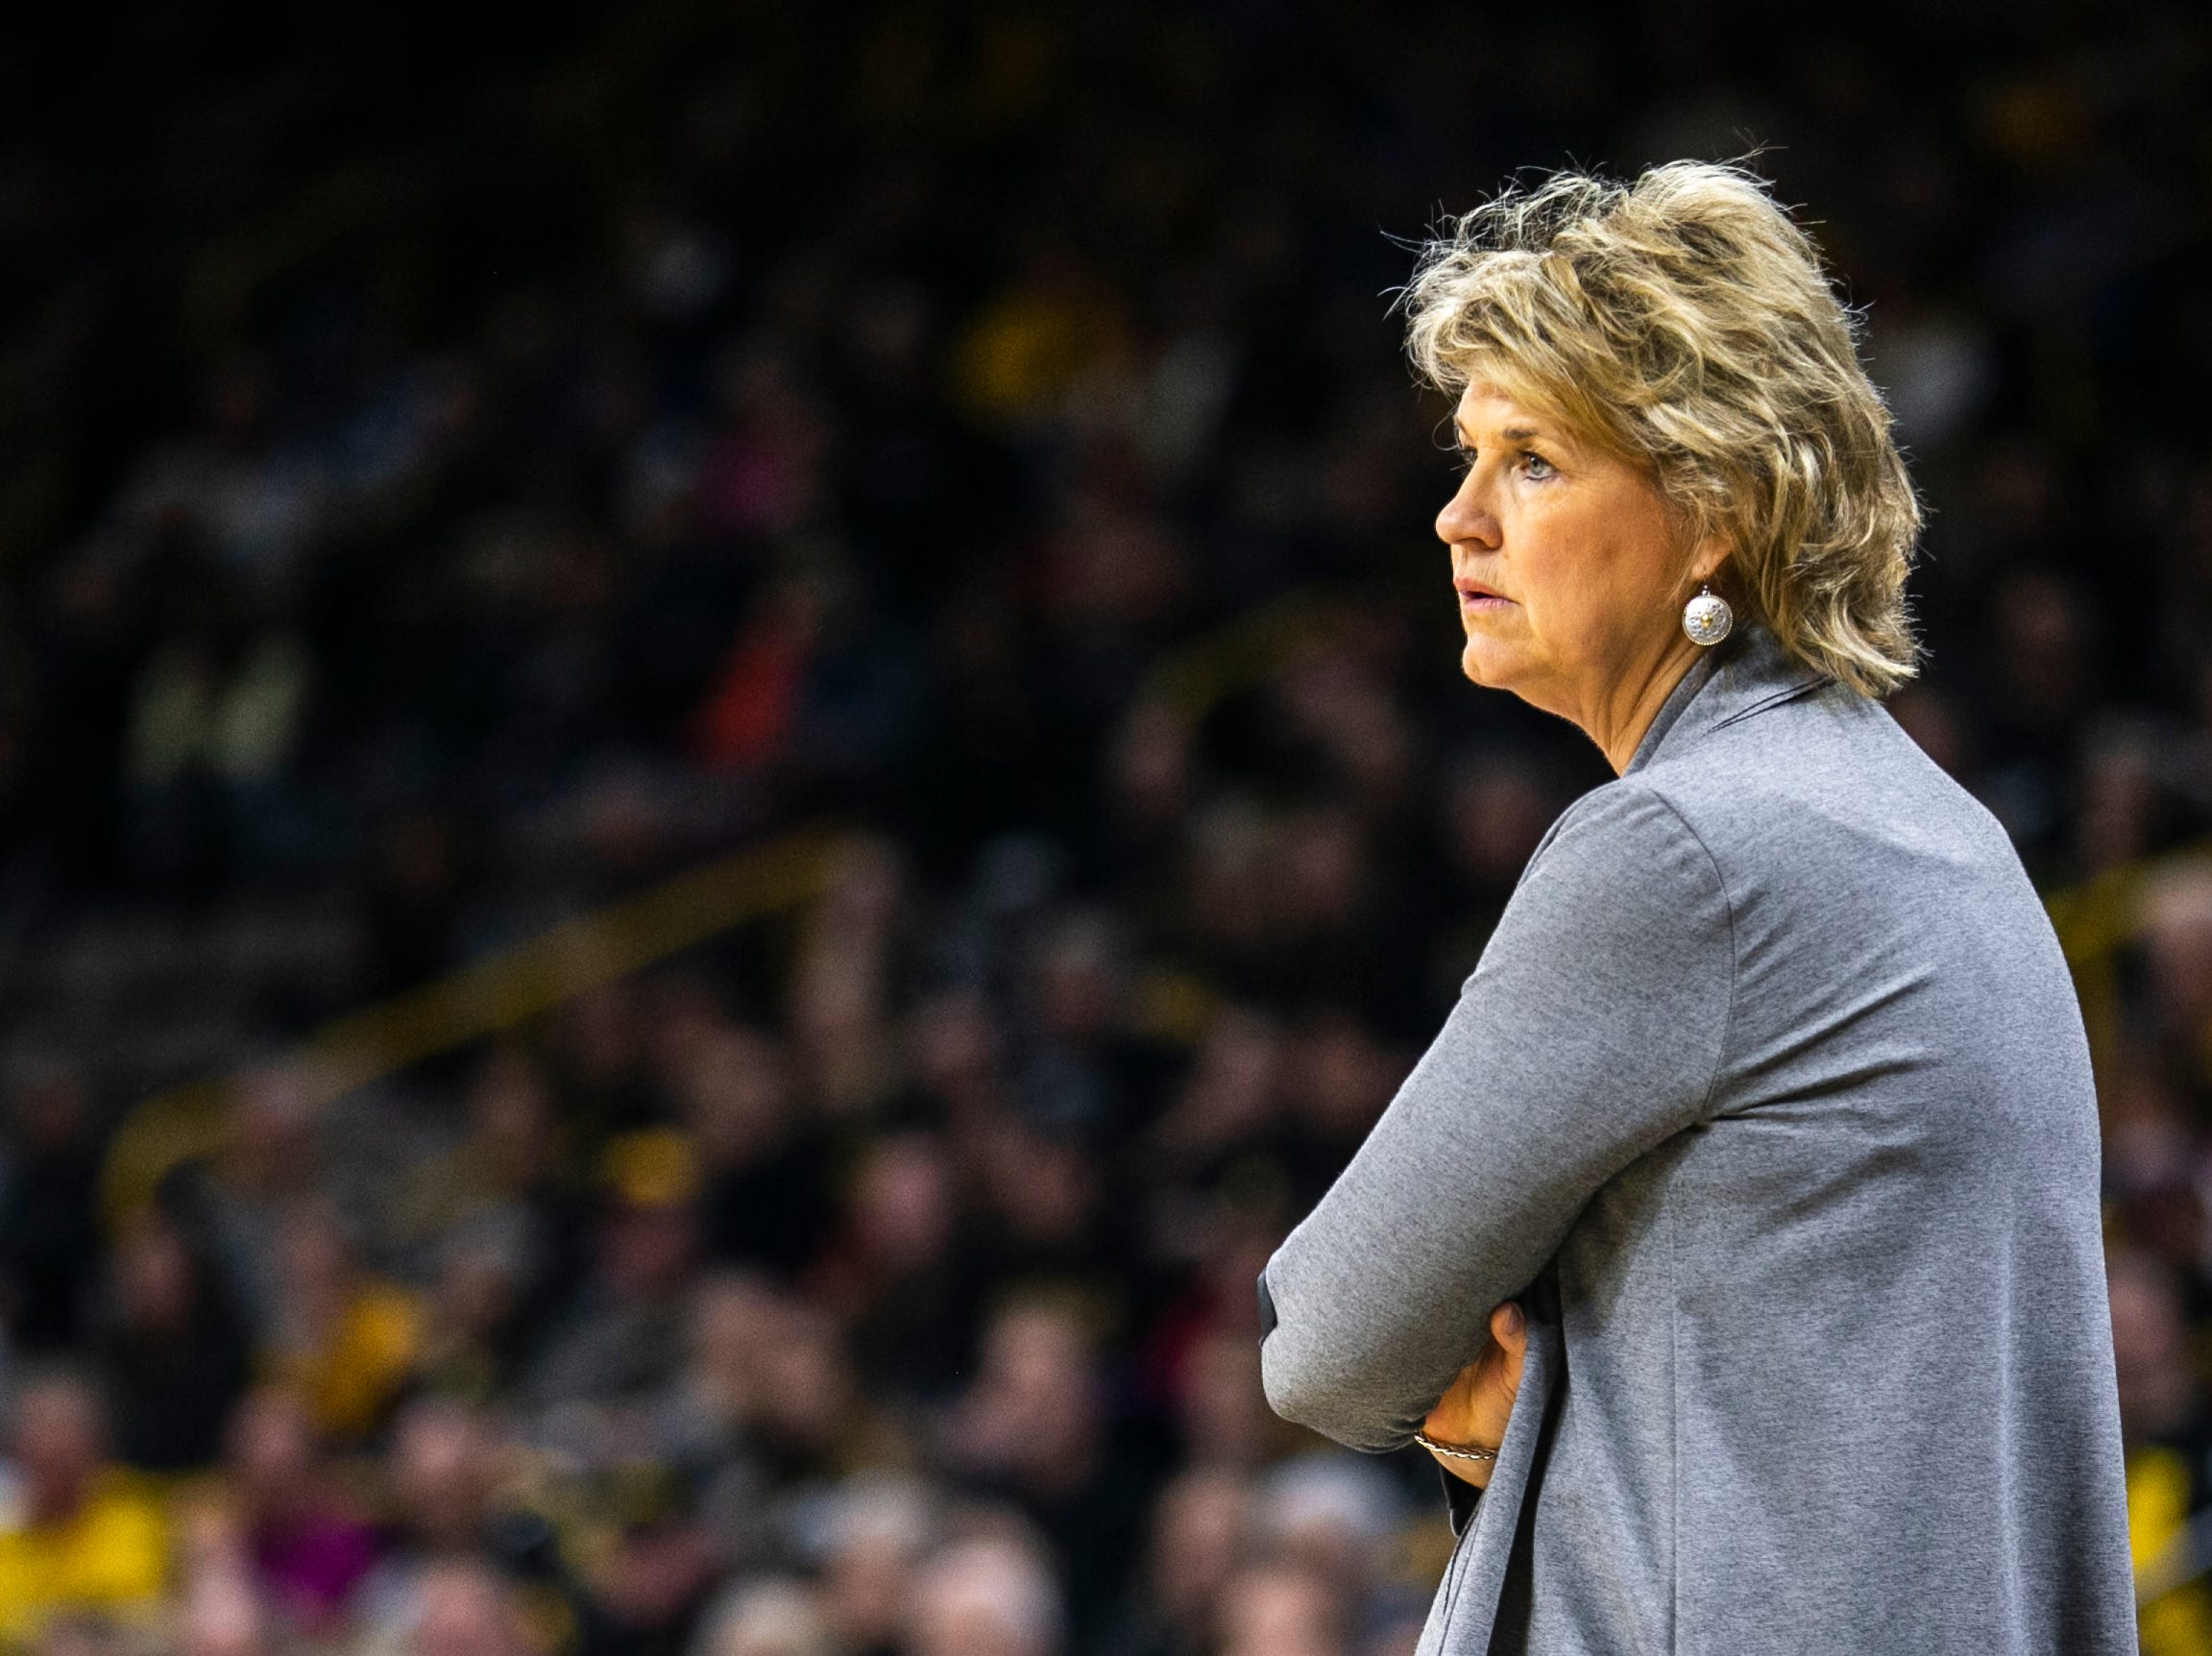 Iowa head coach Lisa Bluder looks on during a NCAA Big Ten Conference women's basketball game on Sunday, Jan. 27, 2019, at Carver-Hawkeye Arena in Iowa City, Iowa.